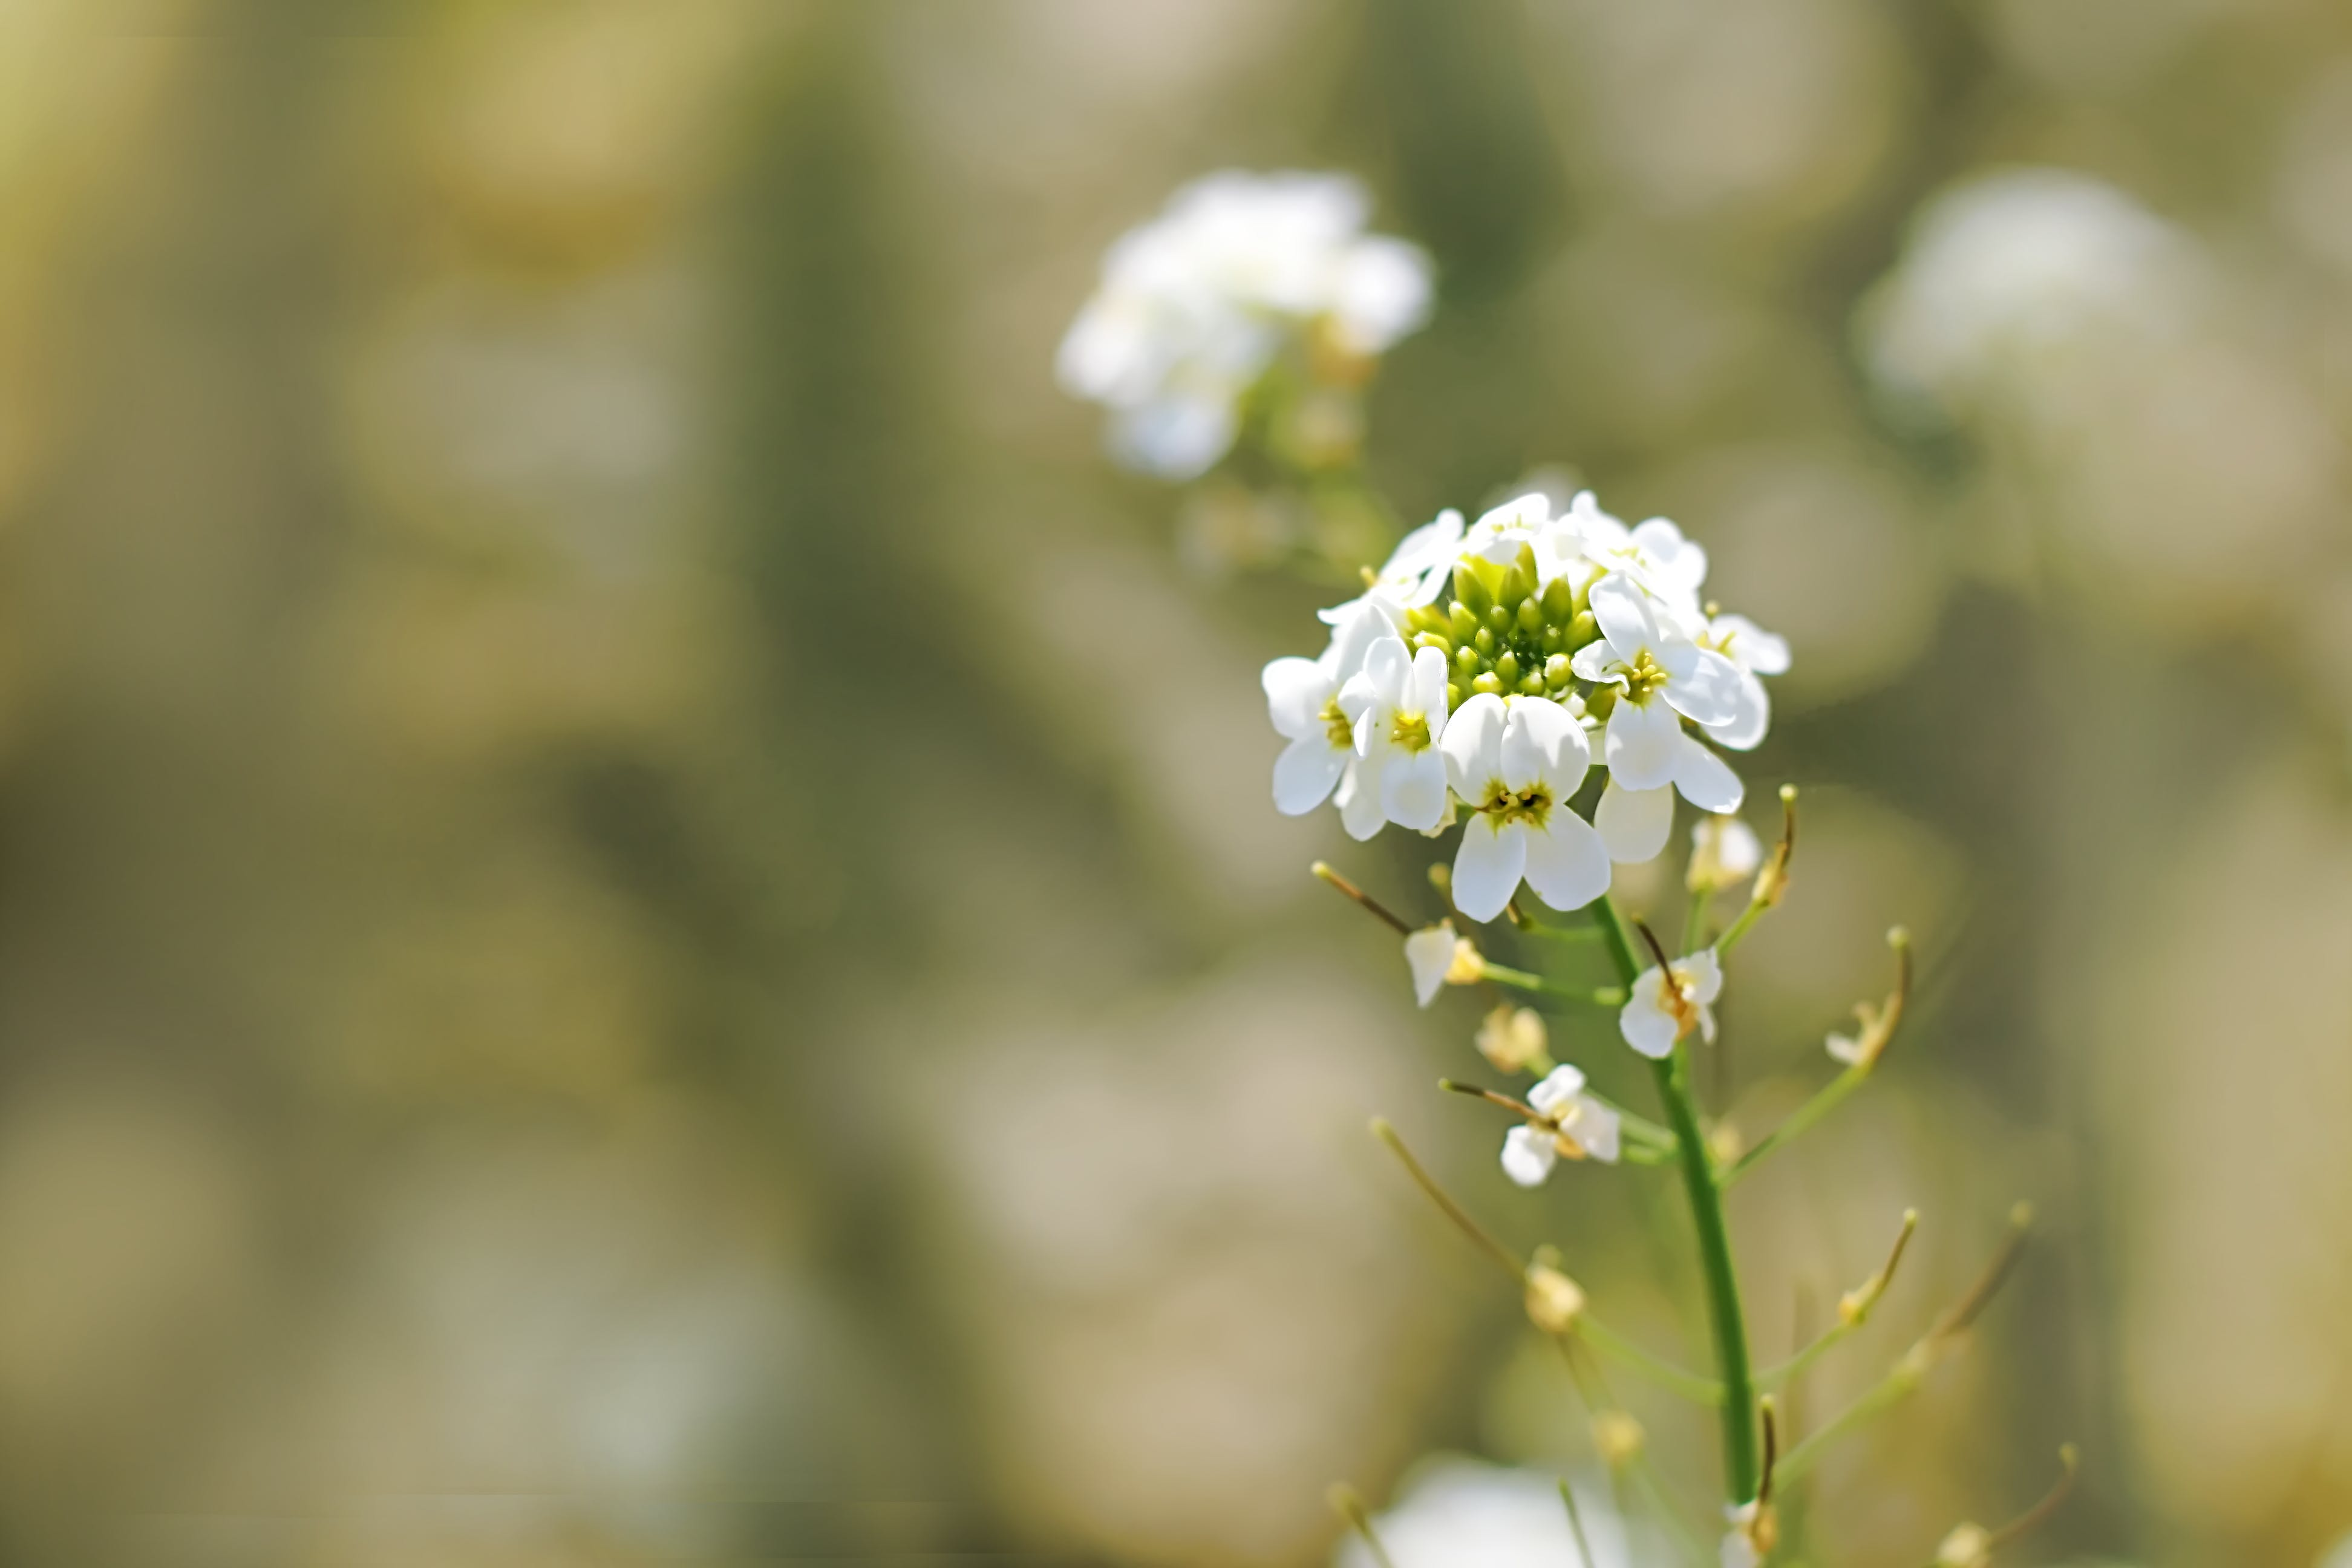 Selective Focus of White Cluster Flowers